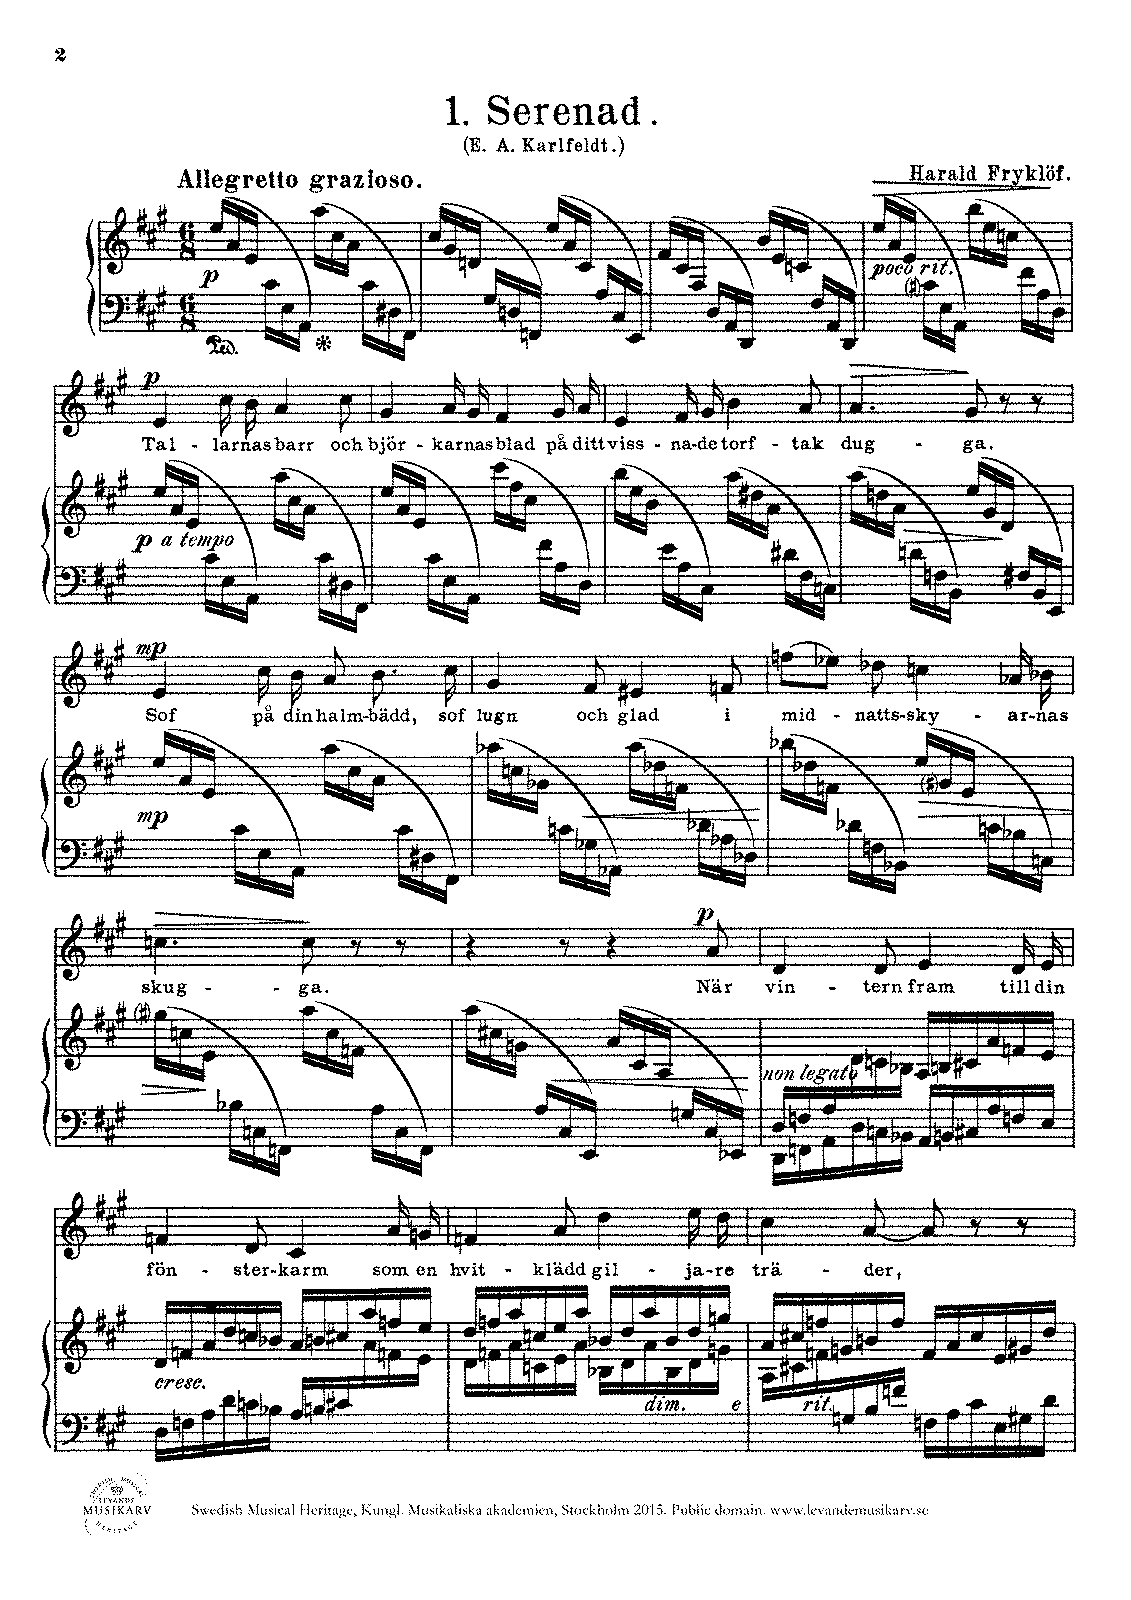 PMLP703852-song 1 score extract.pdf